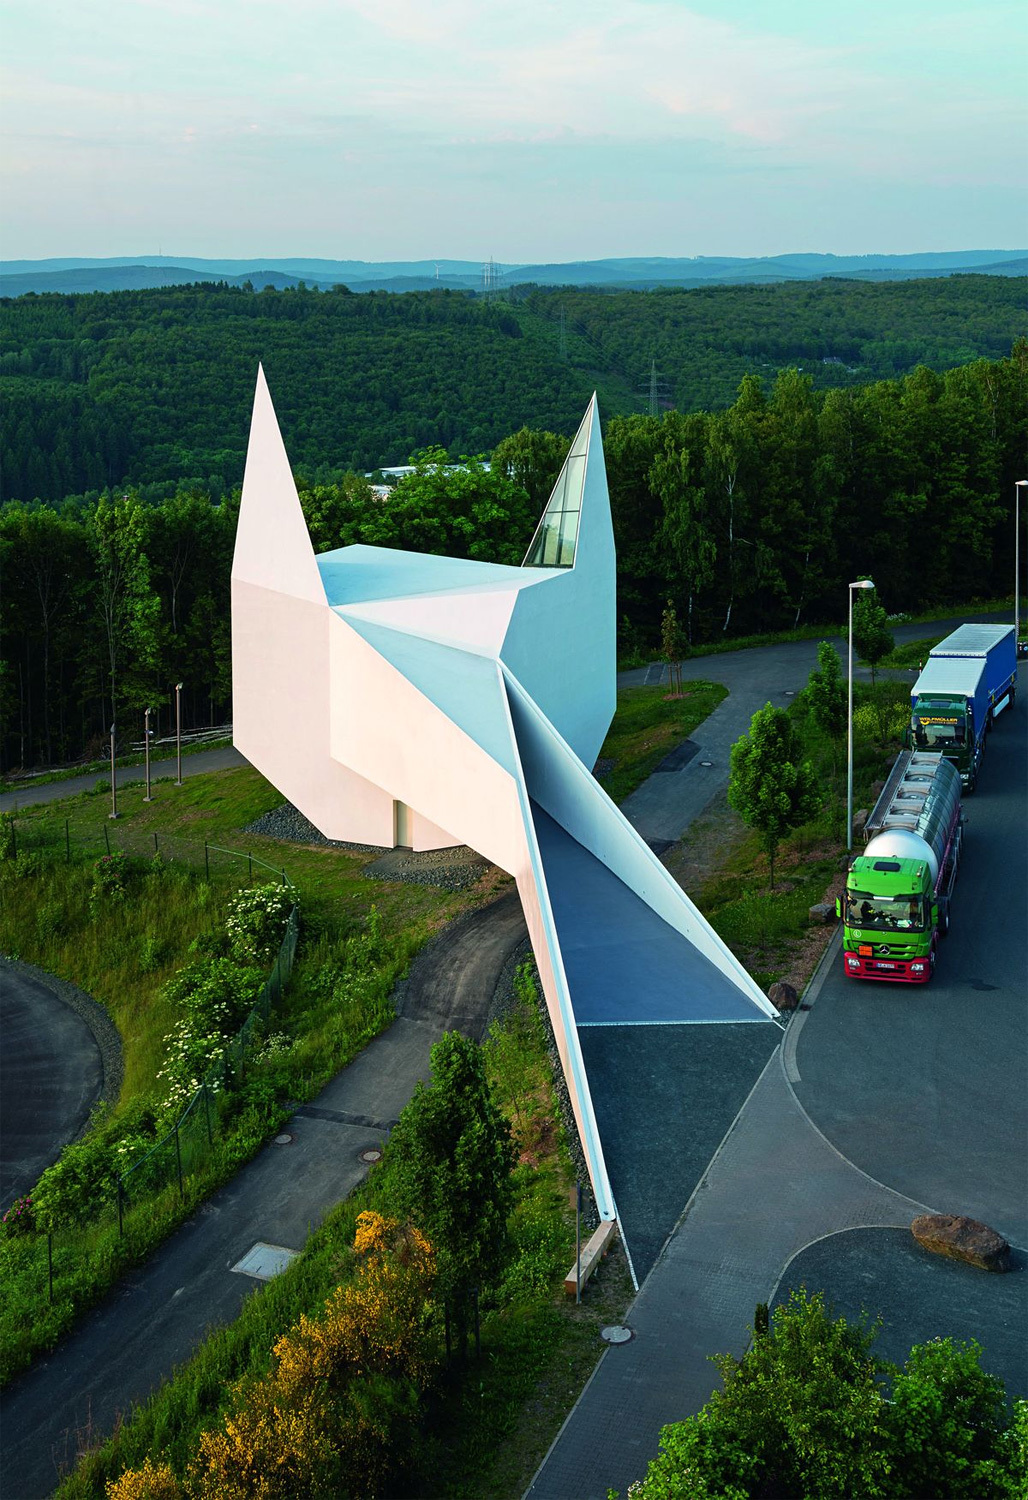 Motorway Church in Siegerland, Germany by Michael Schumann; wood supplier: EGGER Wood-based materials